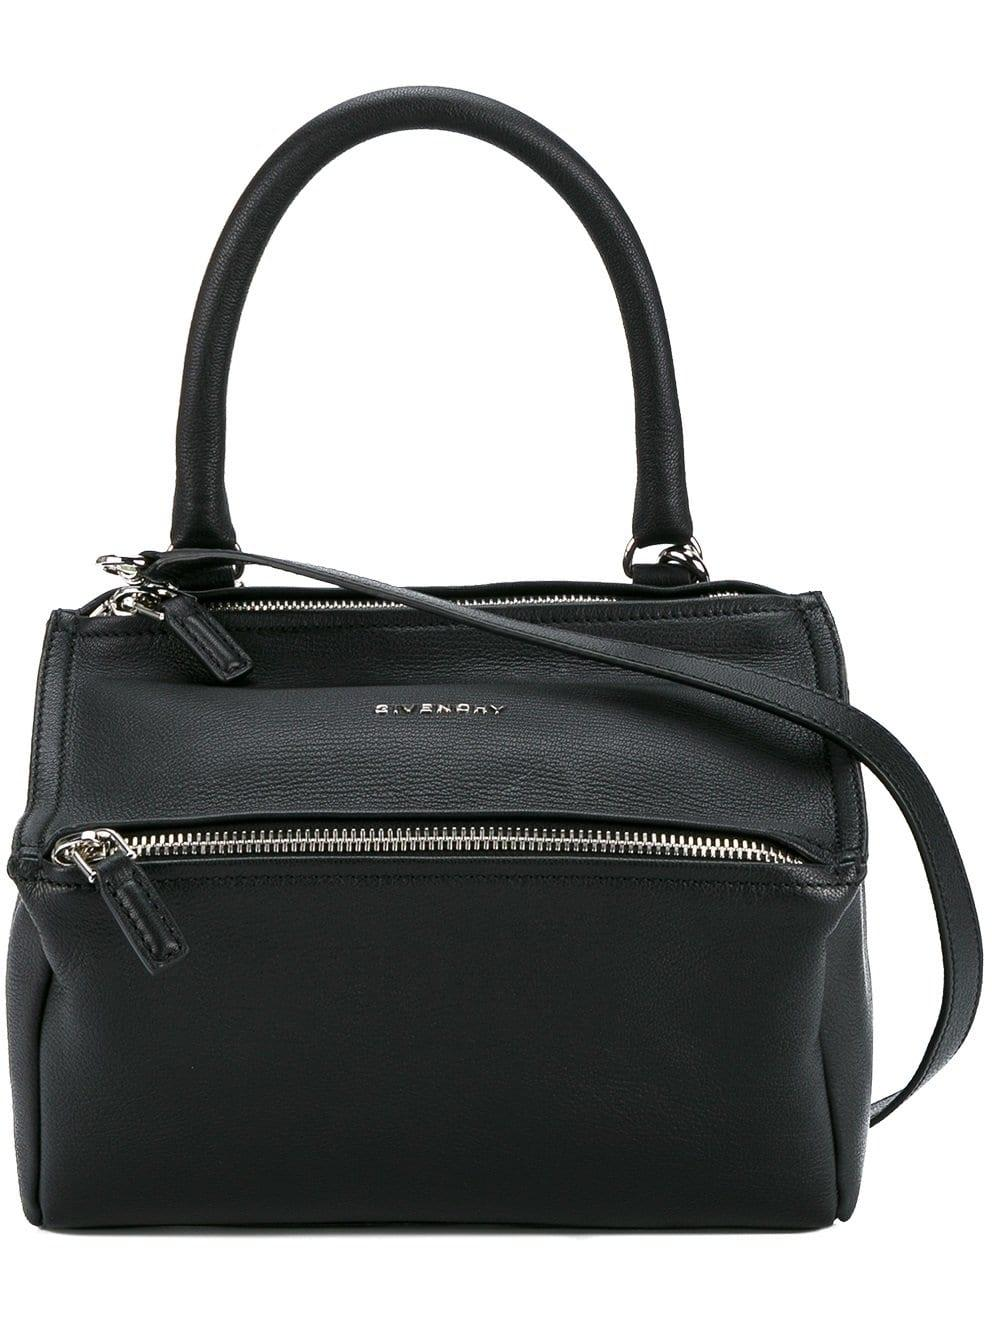 Lyst - Givenchy Pandora Small Leather Shoulder Bag in Black d8263333aa